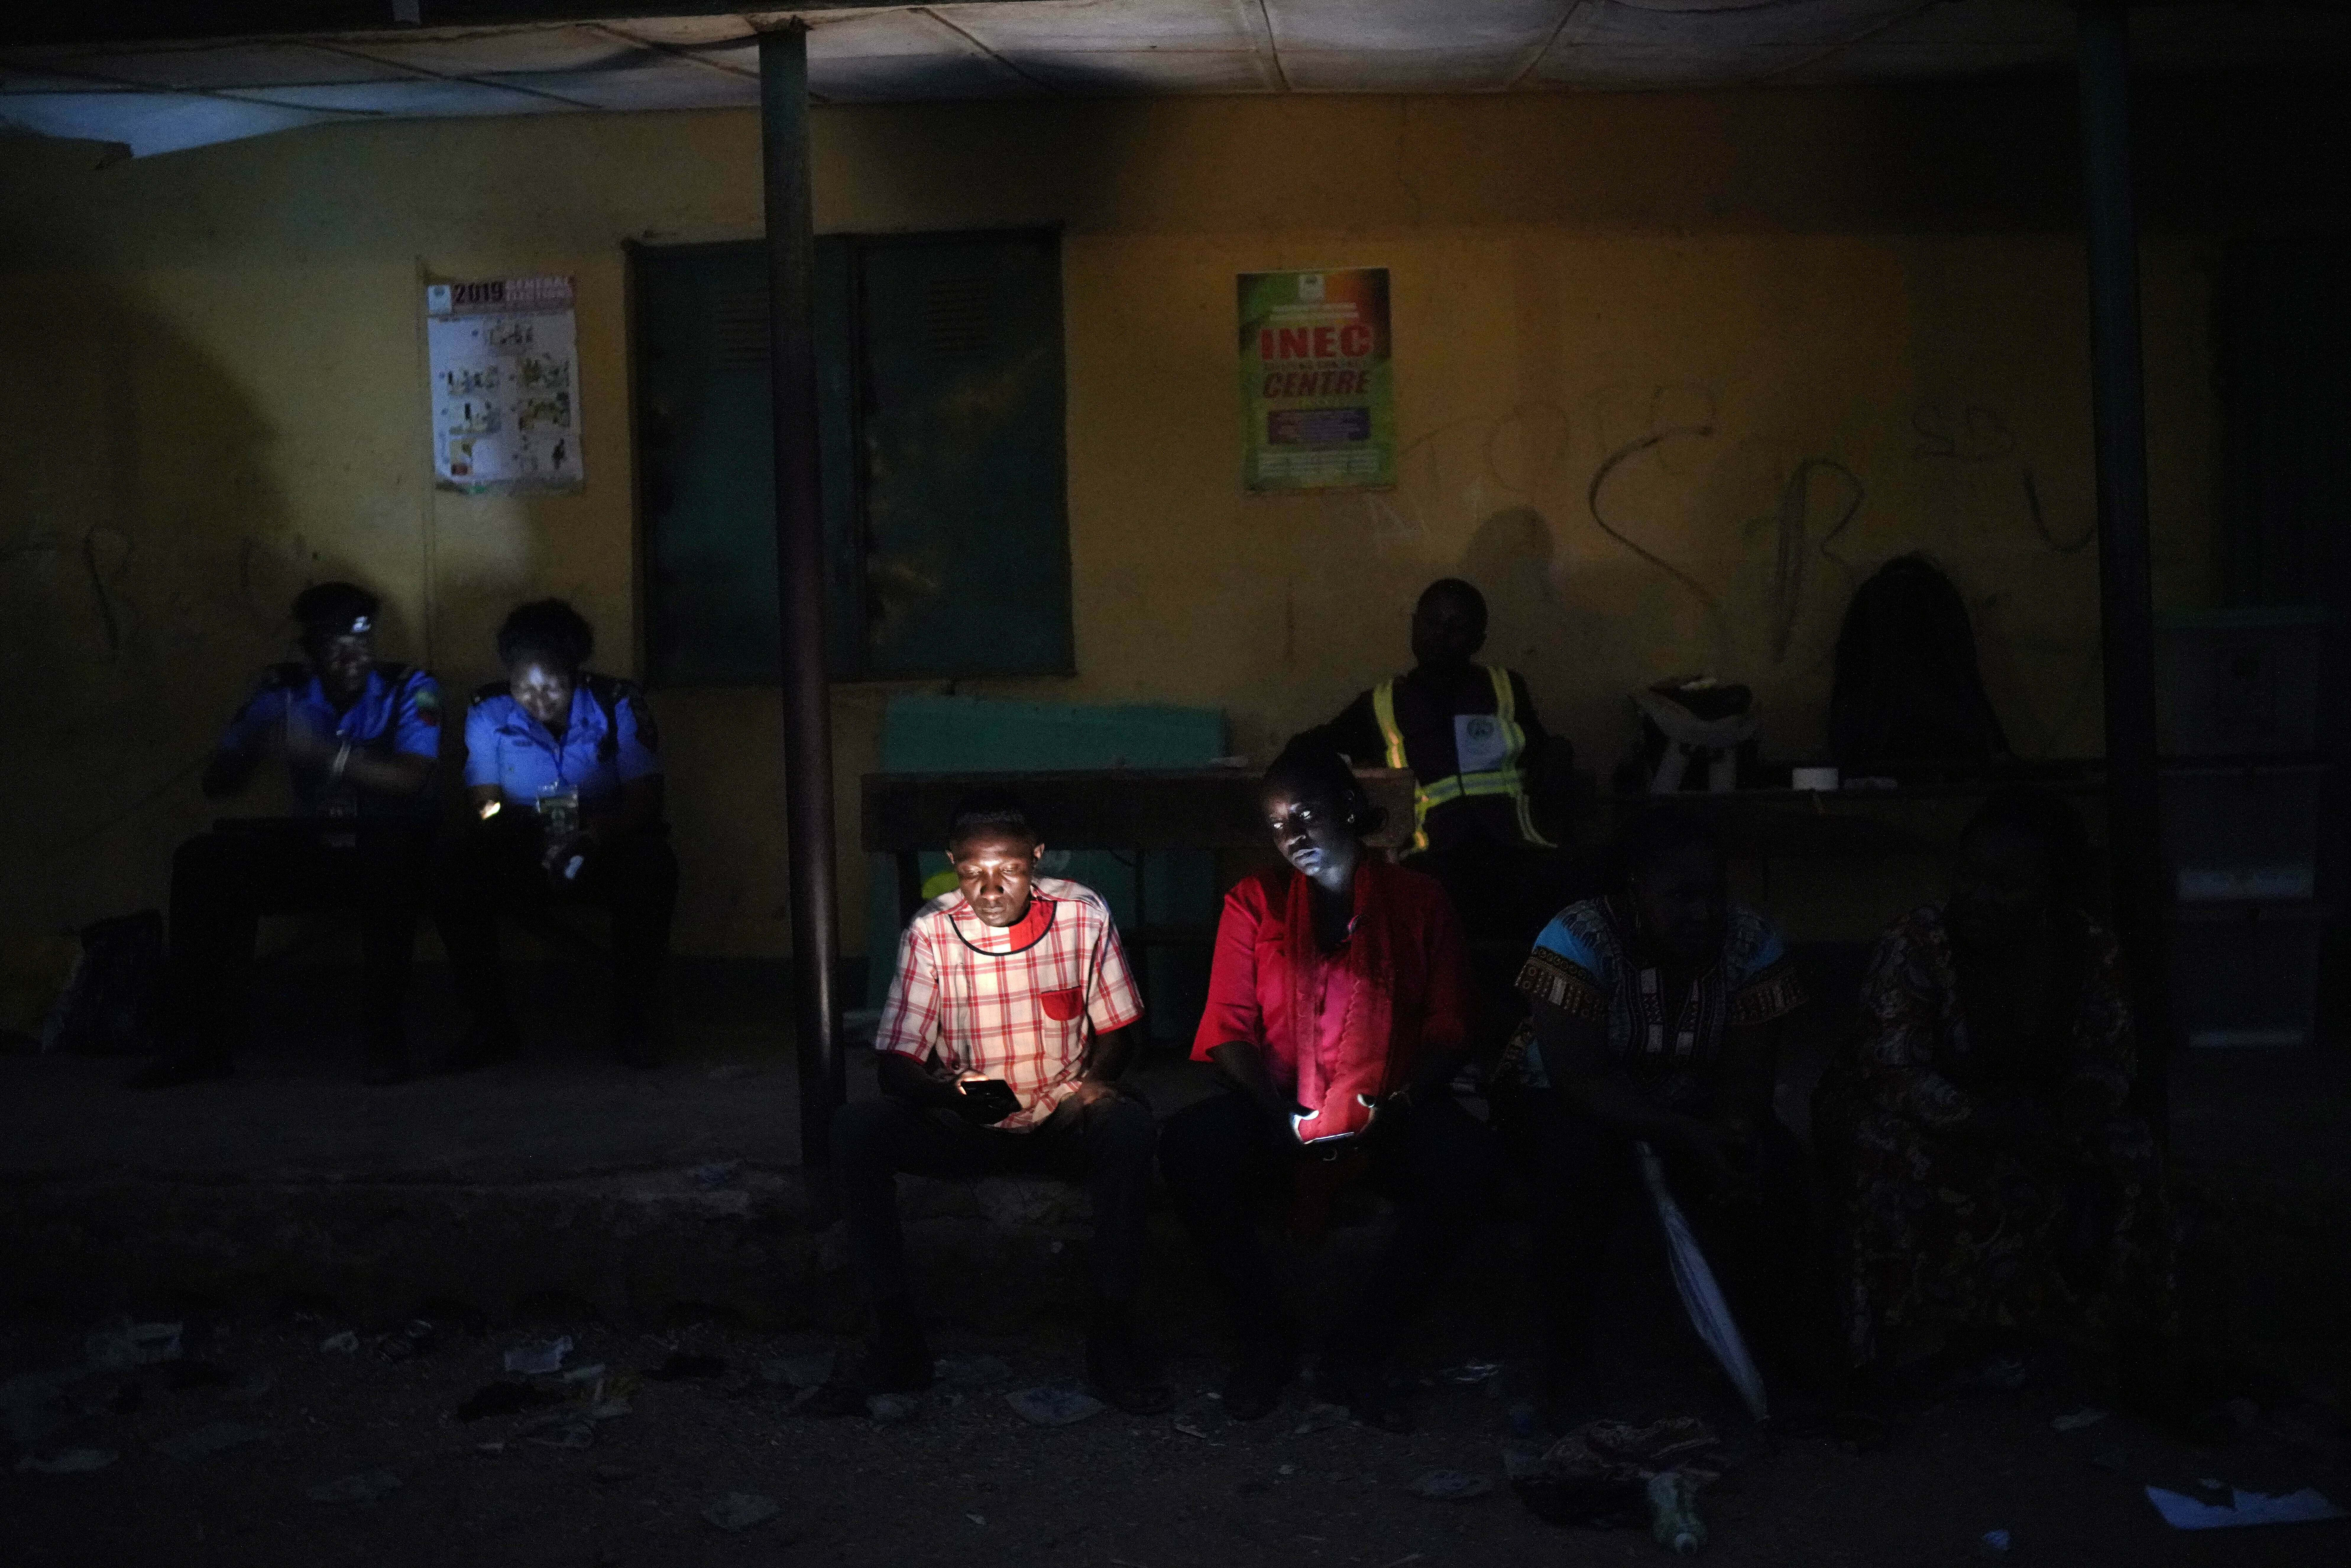 Nigerian election volunteers and police wait for votes to finish being counted in Kaduna, Nigeria, Saturday Feb. 23, 2019. Incumbent President Muhammadu Buhari is facing opposition presidential candidate Atiku Abubakar in the presidential election. (AP Photo/Jerome Delay)